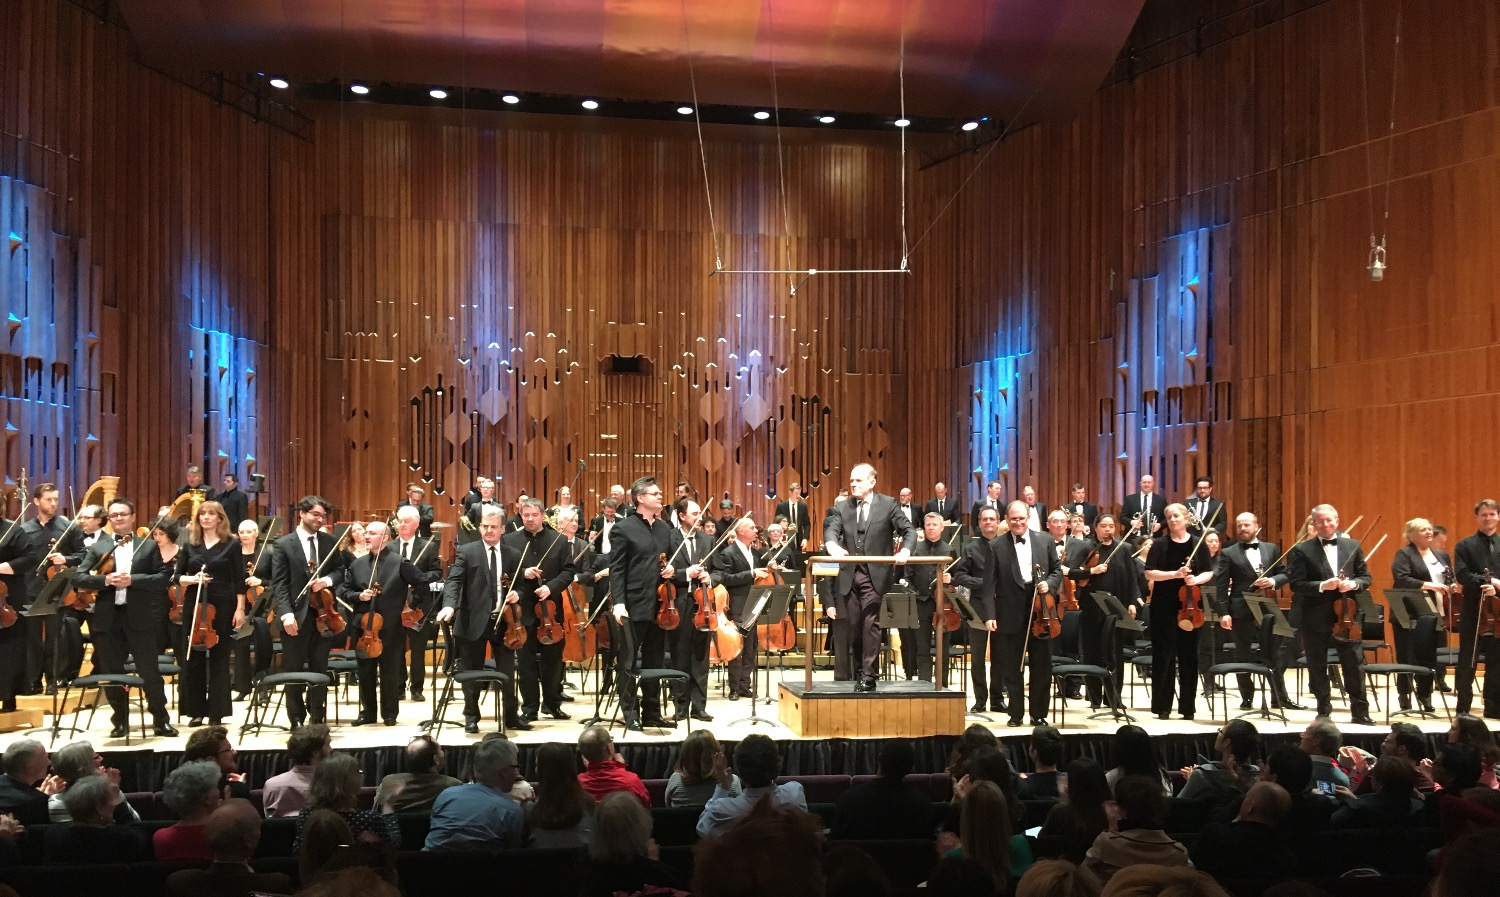 Half-Six Fix - Barbican Hall, BarbicanWednesday 27 March, 6.30pm - 7.30pm, £12-£36A great way to wind down after work, drink in hand, and learn something new. This hour-long concert by the London Symphony Orchestra gives you an insight into music by Strauss and Shostakovich through digital programme notes and an introduction by the conductor.